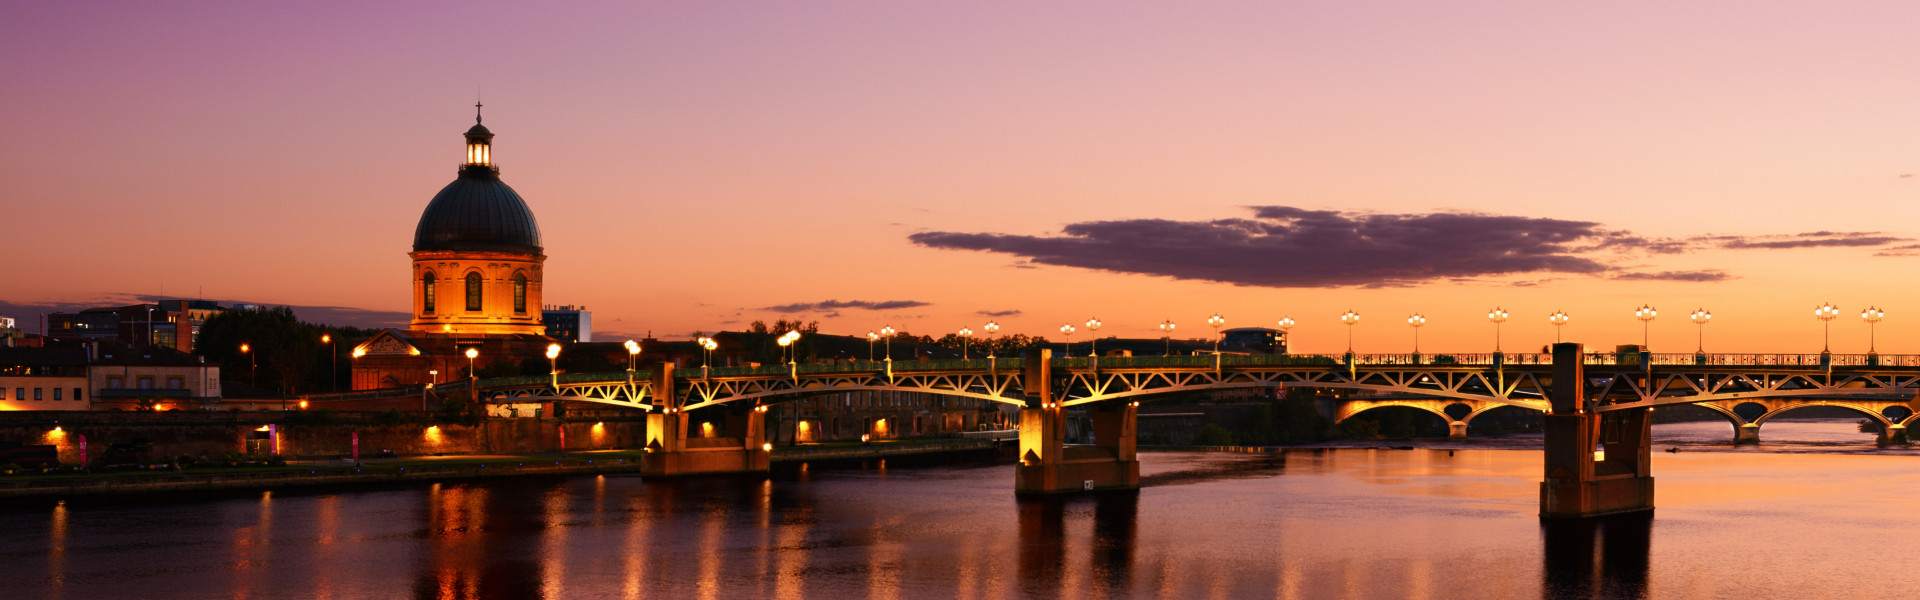 Destination image of Toulouse